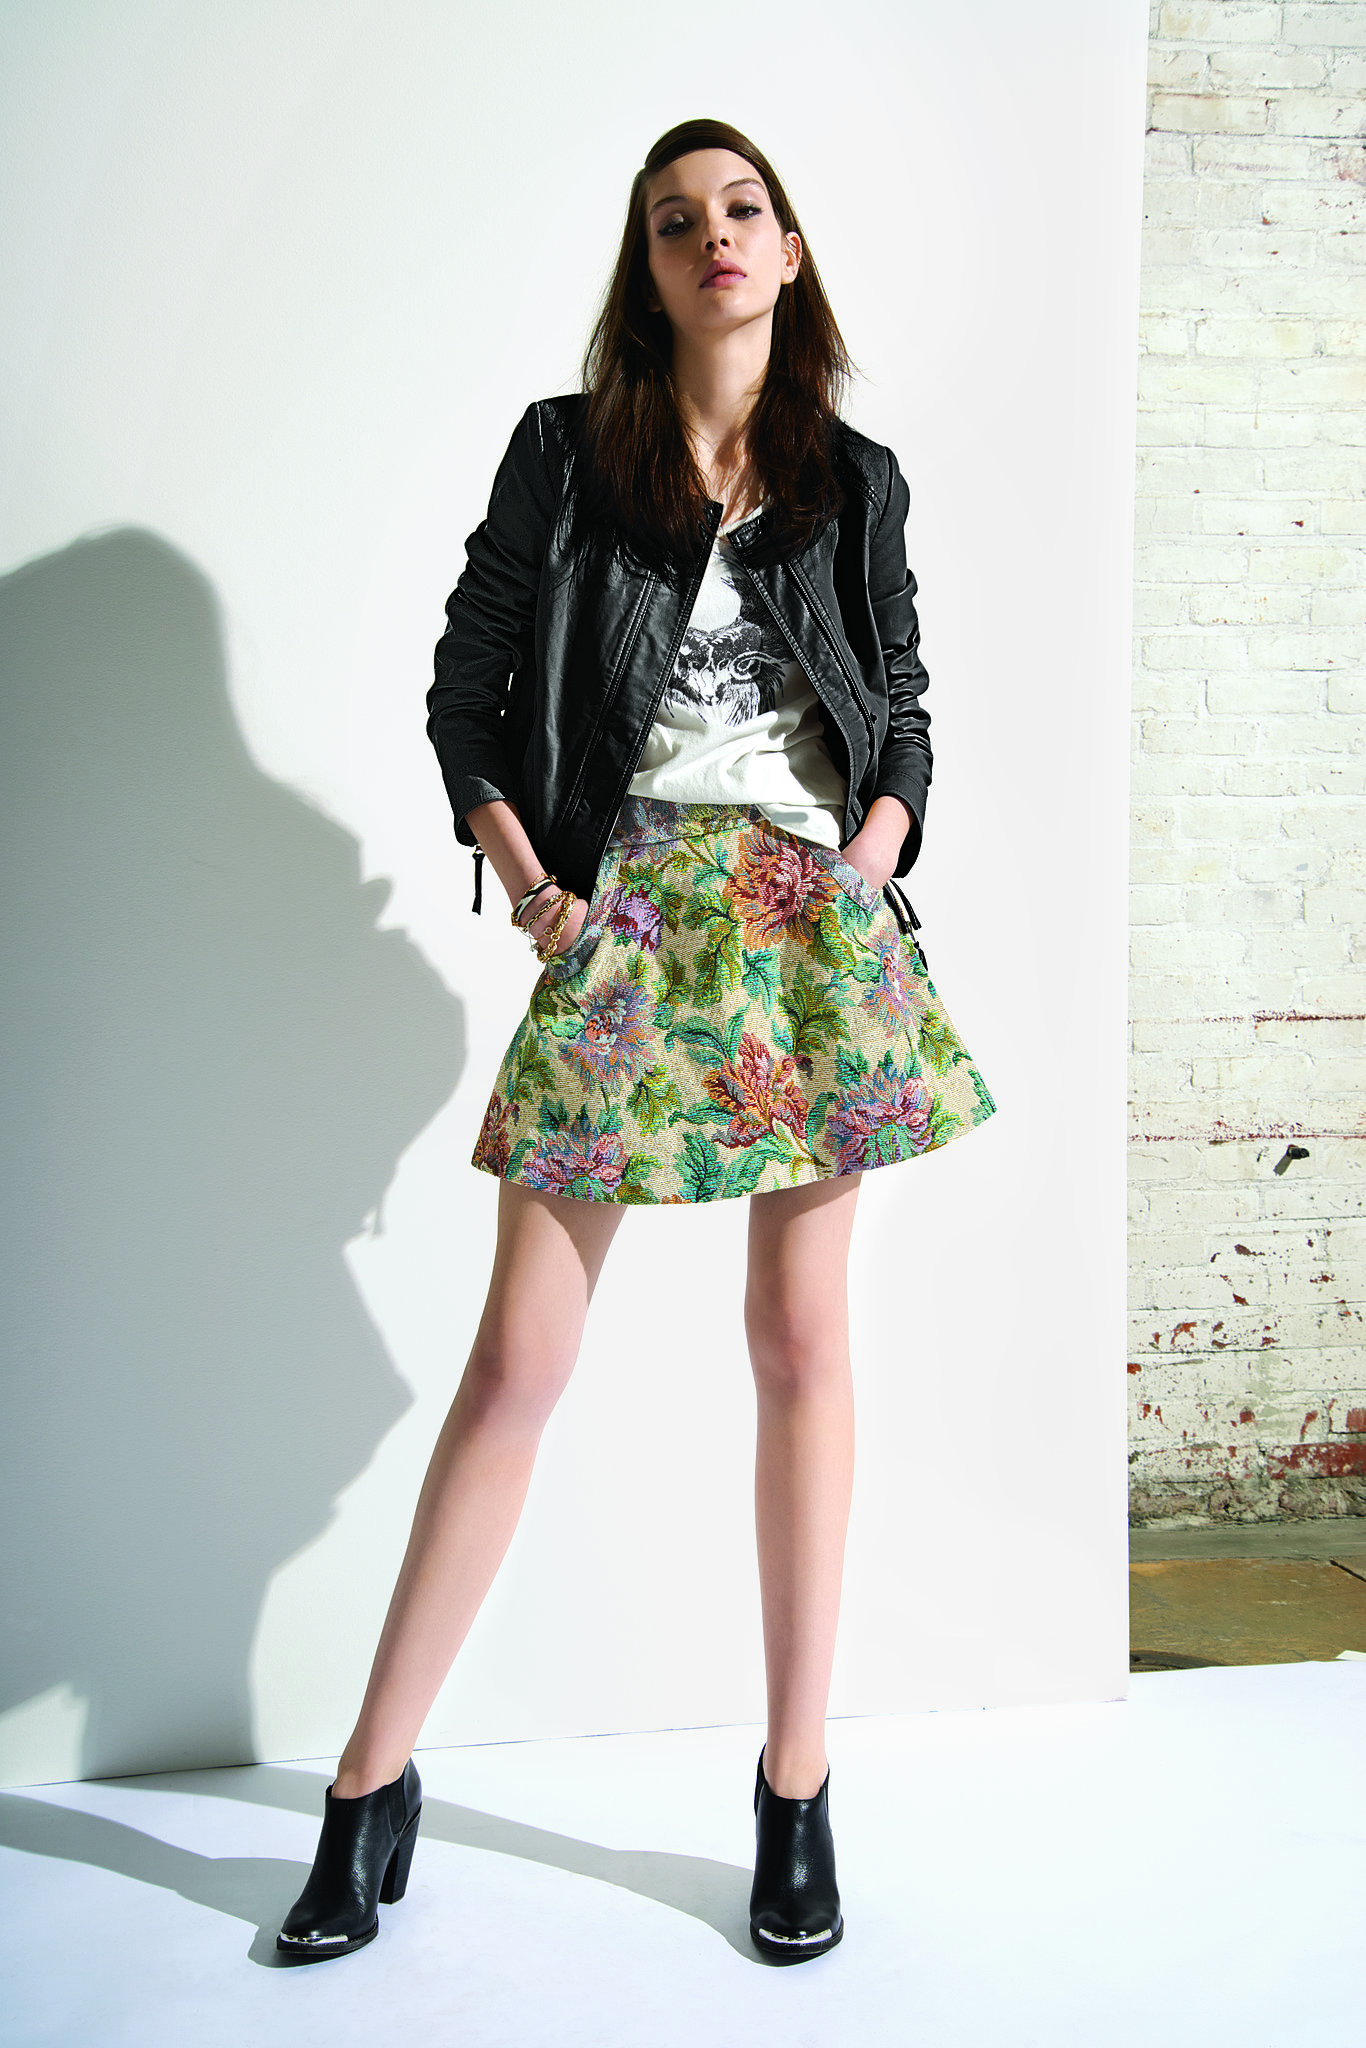 Love this styled look from Free People? It's all on sale! The girliness of the floral skater skirt ($60, originally $98) and lace t-shirt ($50, originally $78) is topped off nicely by the vegan leather jacket ($130, originally $198).